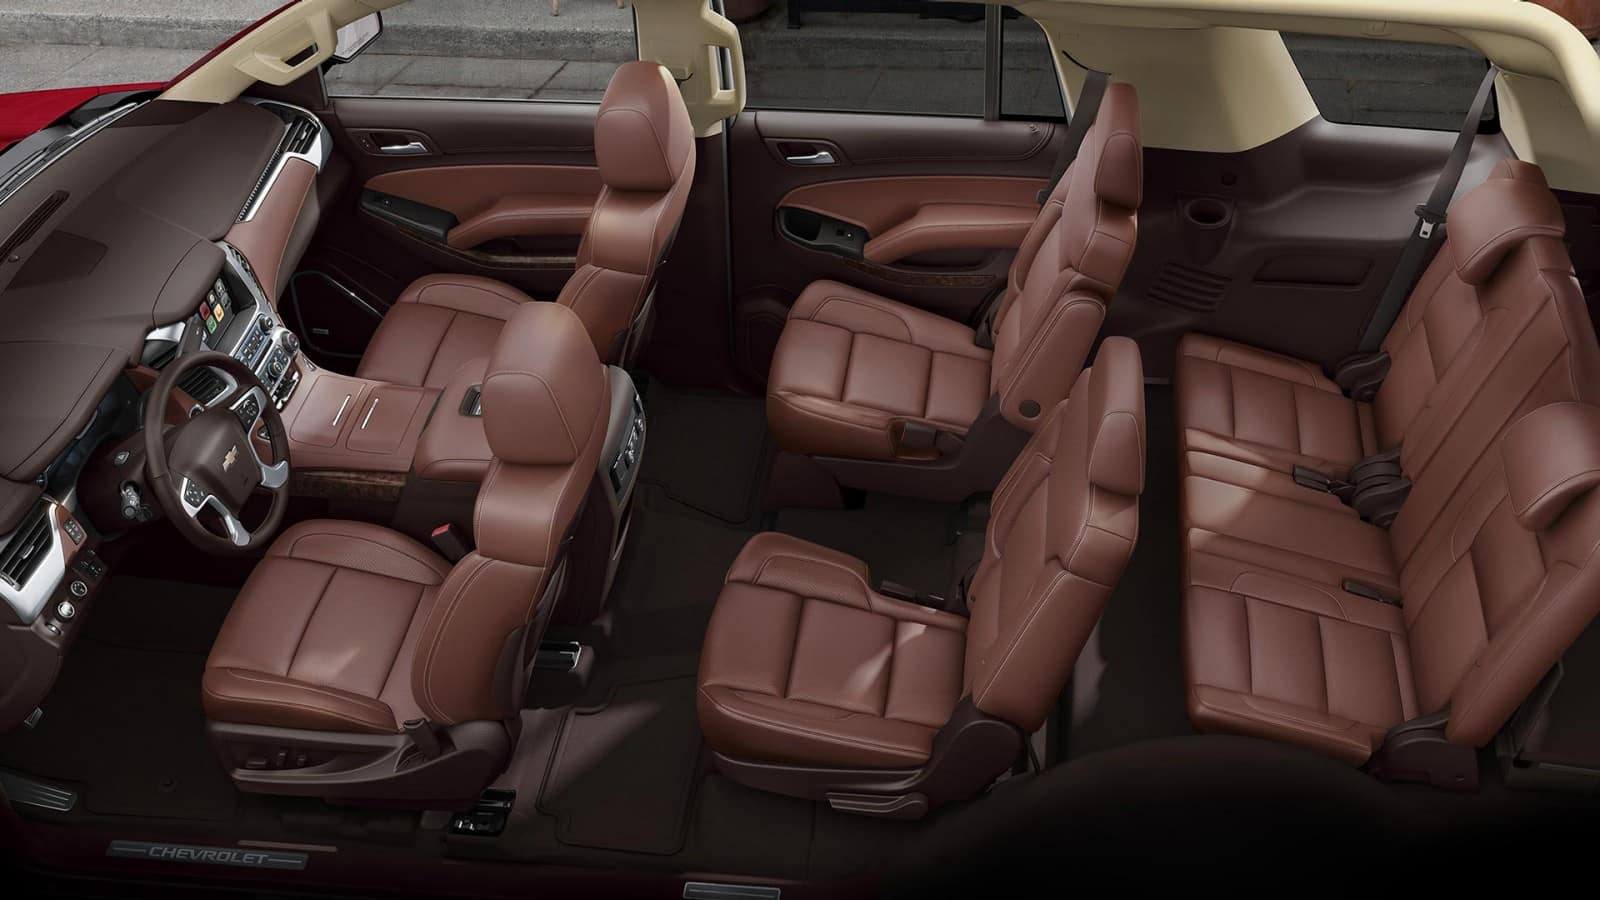 Three rows of brown leather seats from above in a 2017 Used Chevy Tahoe.